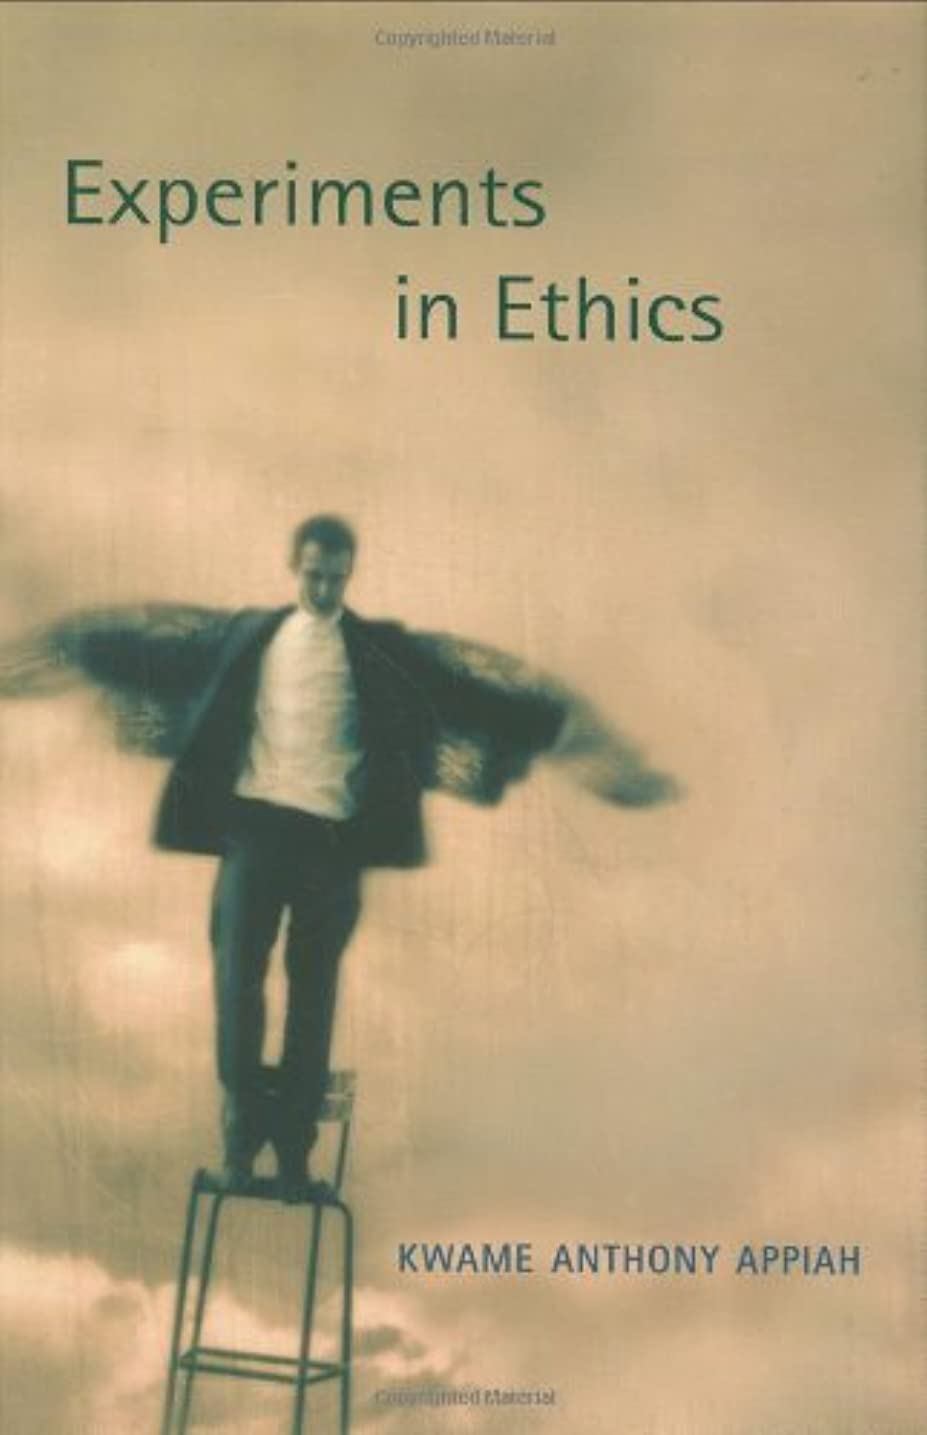 Experiments in Ethics (Flexner Lectures) (The Mary Flexner Lectures) (English Edition)